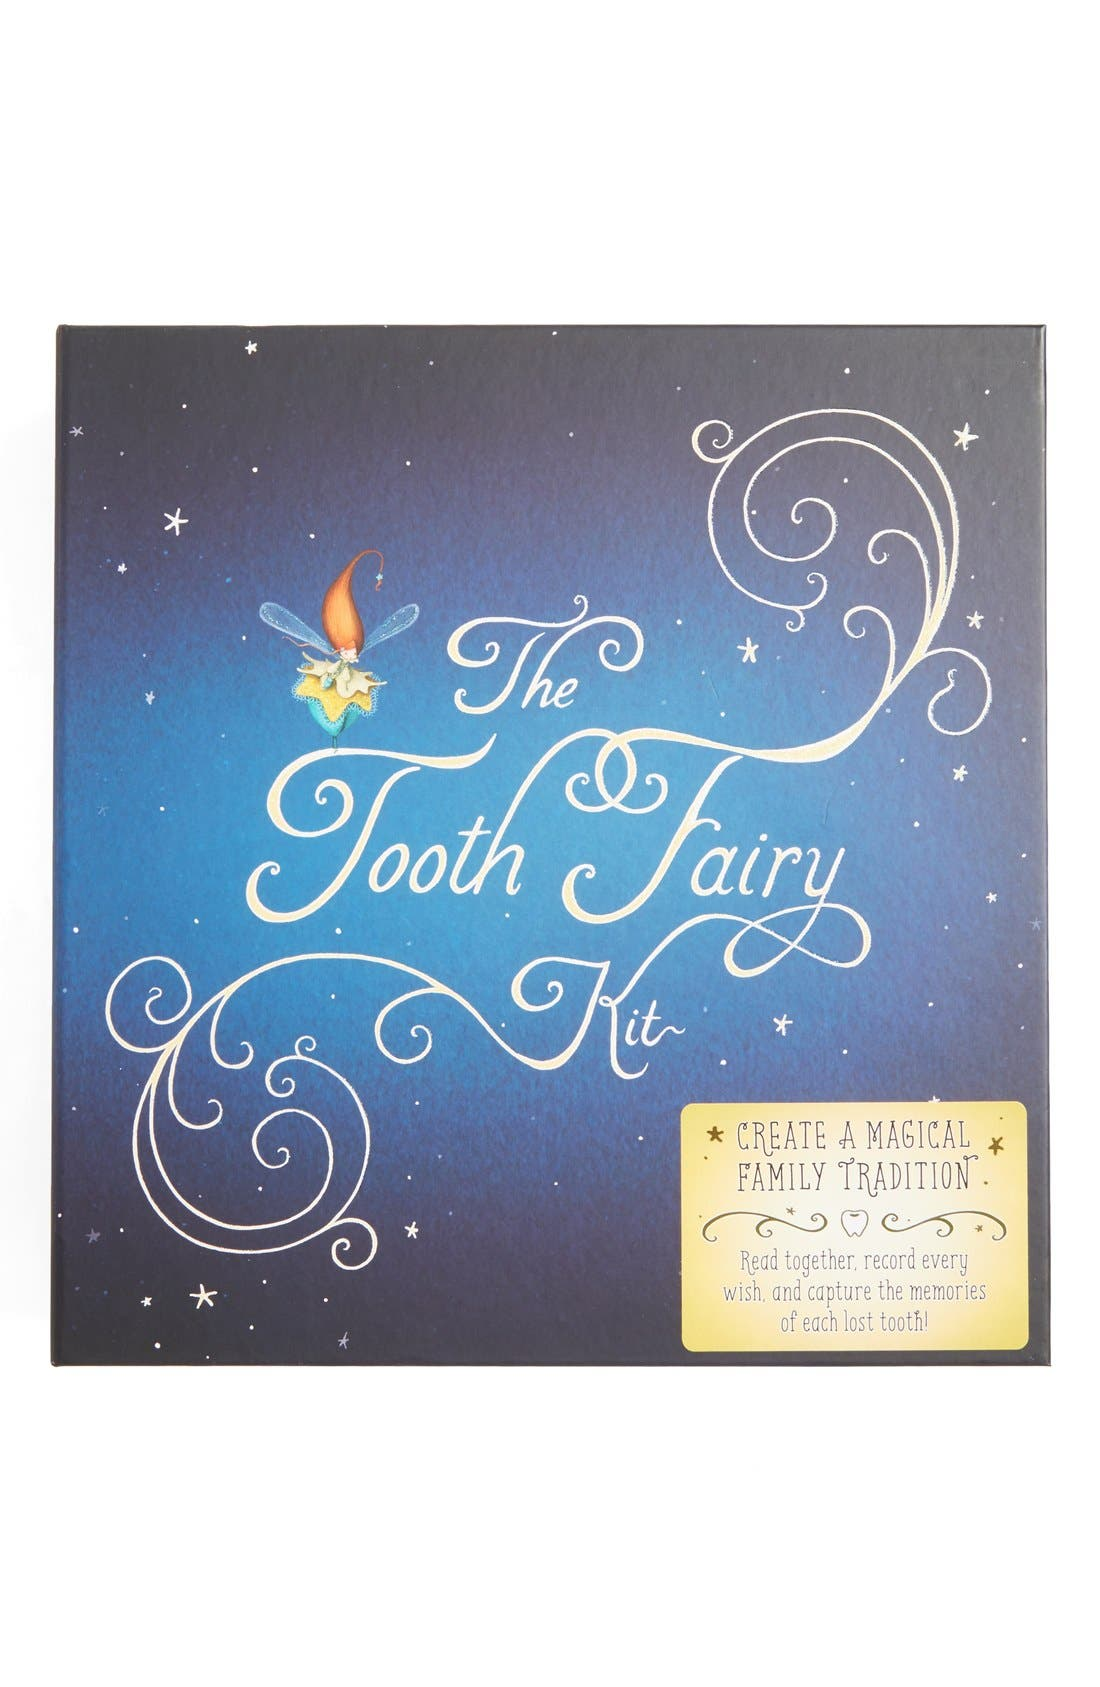 Compendium The Tooth Fairy Kit